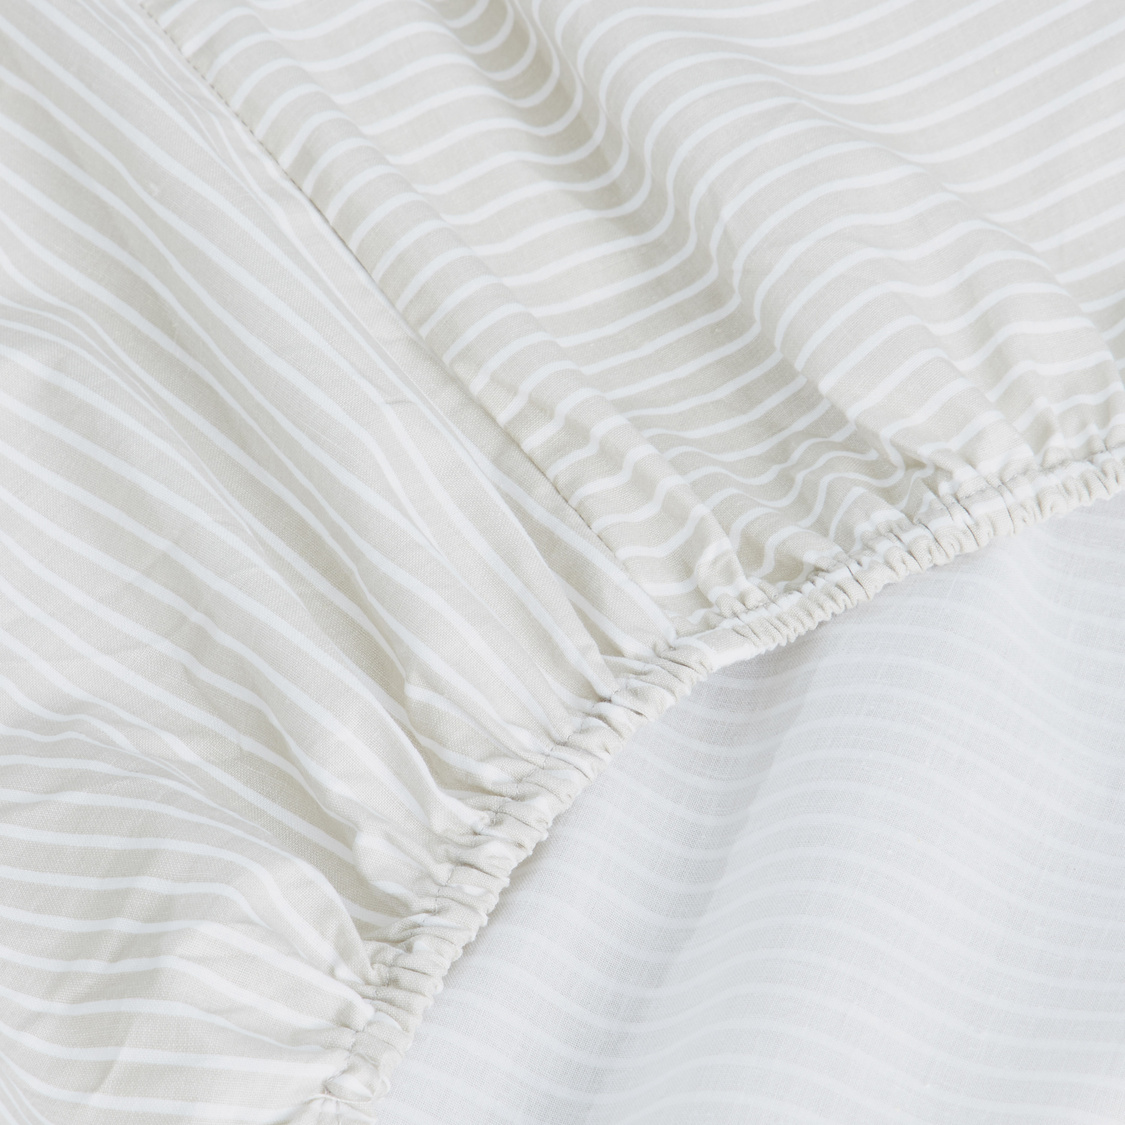 Striped Fitted Sheet - 200x150 cms